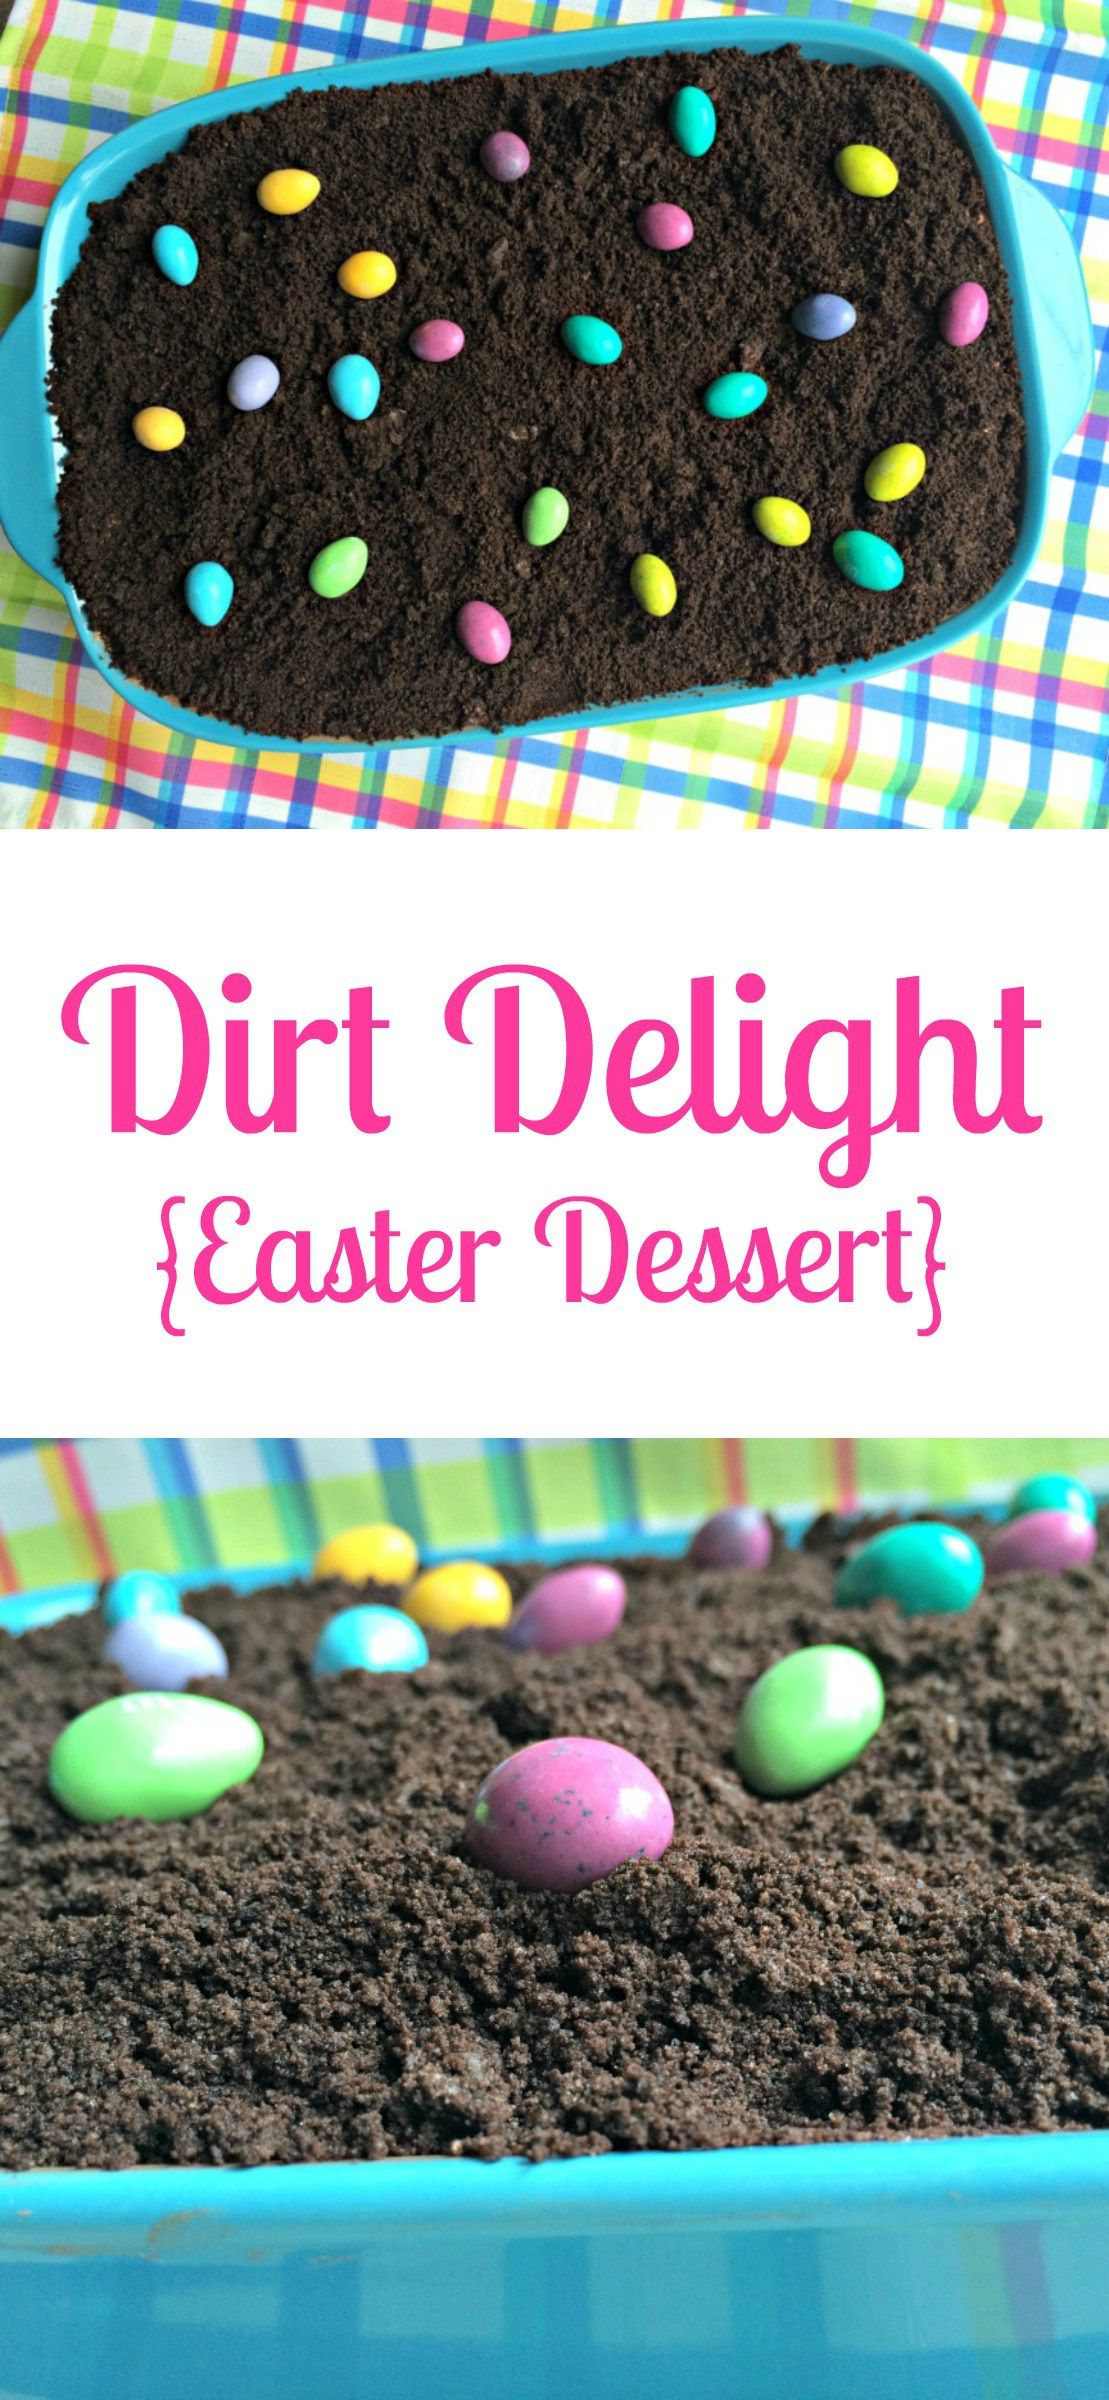 Einfaches hausdesign 2018 dirtlighteastersweets  recipes by chocolate slopes  pinterest